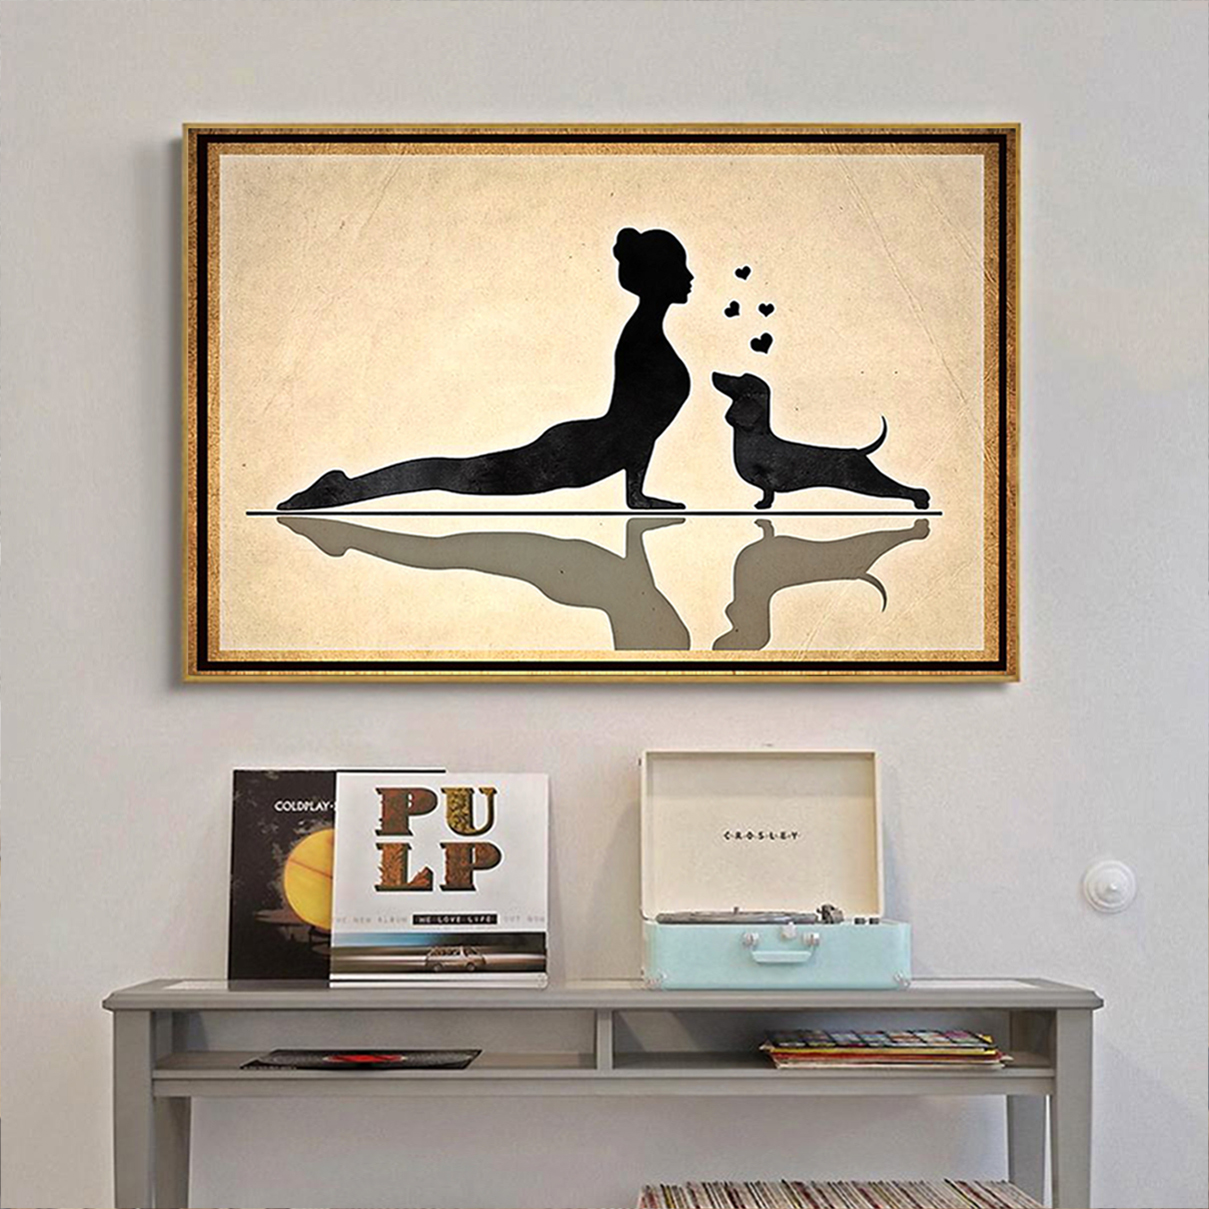 Dachshund and yoga poster A3